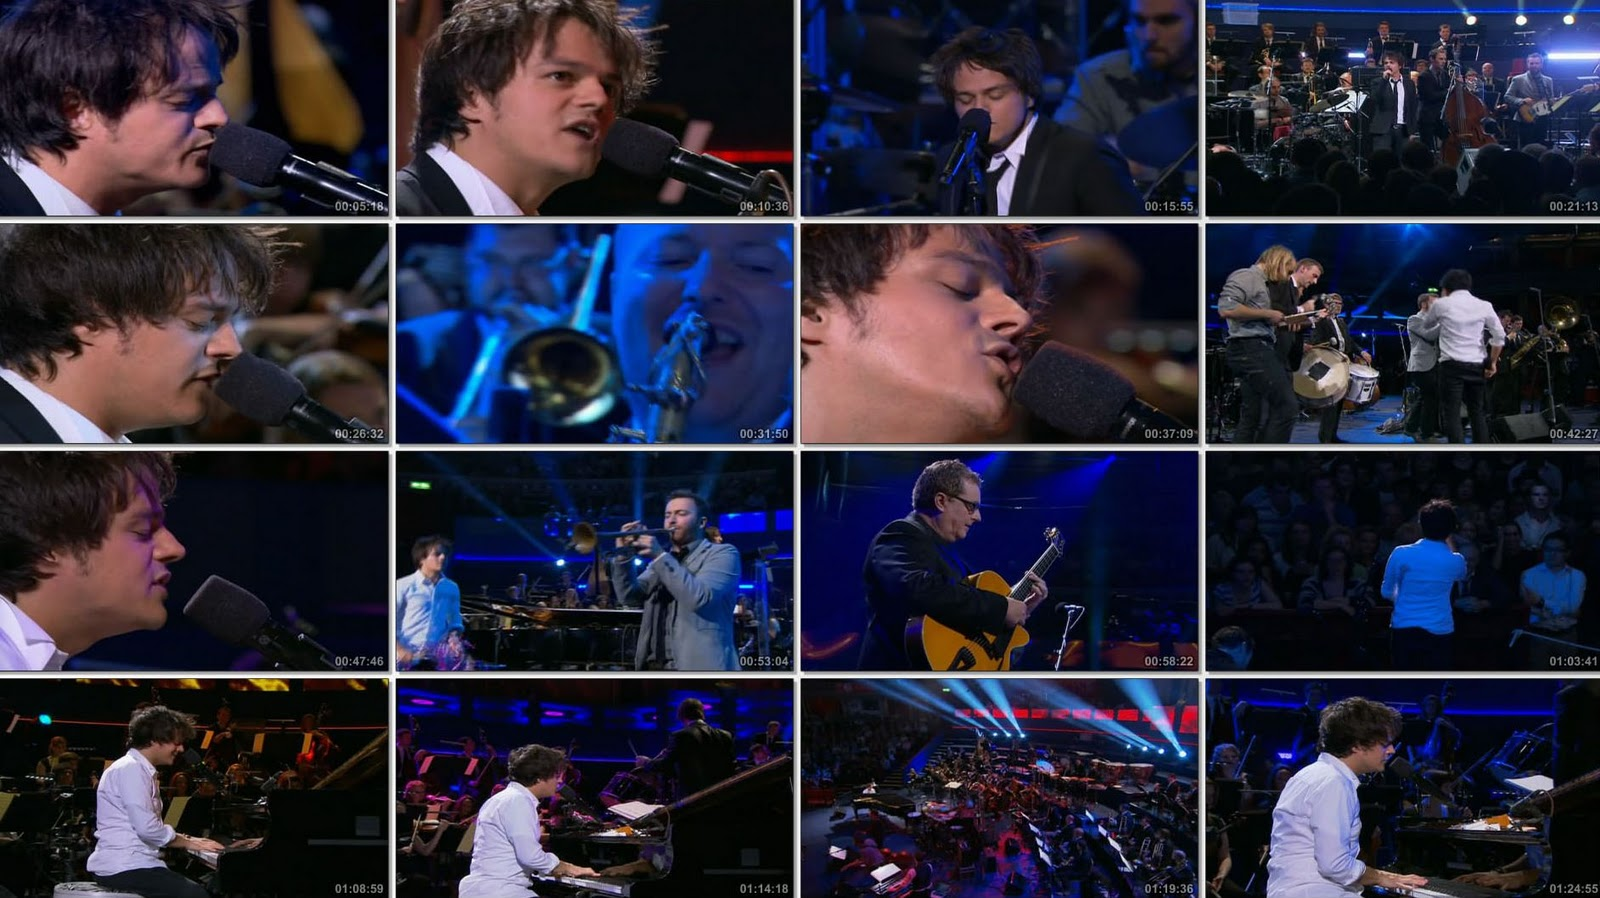 The gentle side of jazz jamie cullum and the heritage for Jules buckley and the heritage orchestra